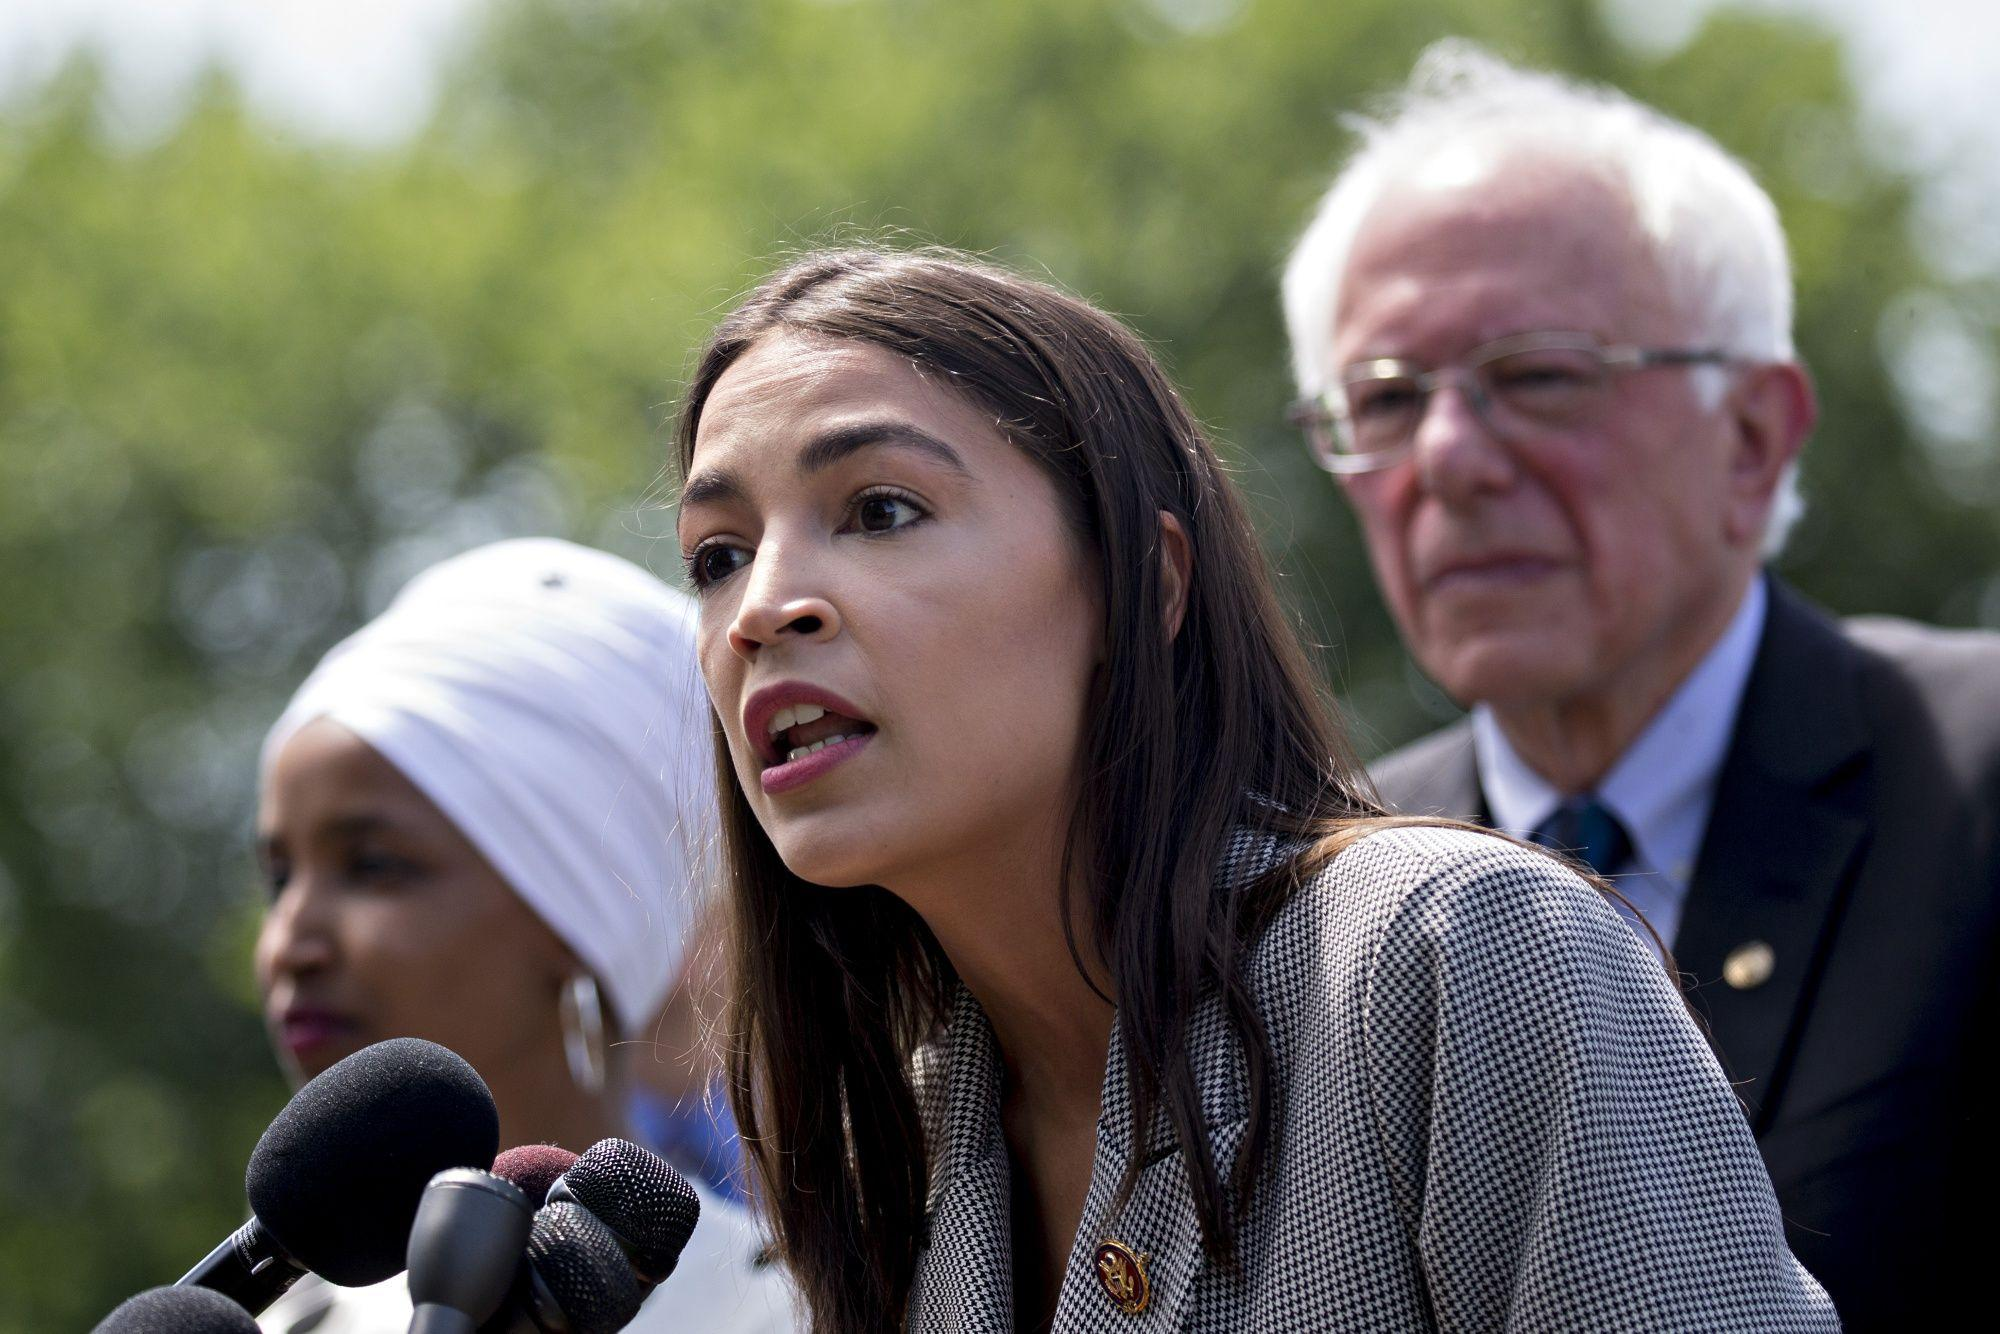 Rep. Ilhan Omar joins Ocasio-Cortez in endorsing Bernie Sanders for president